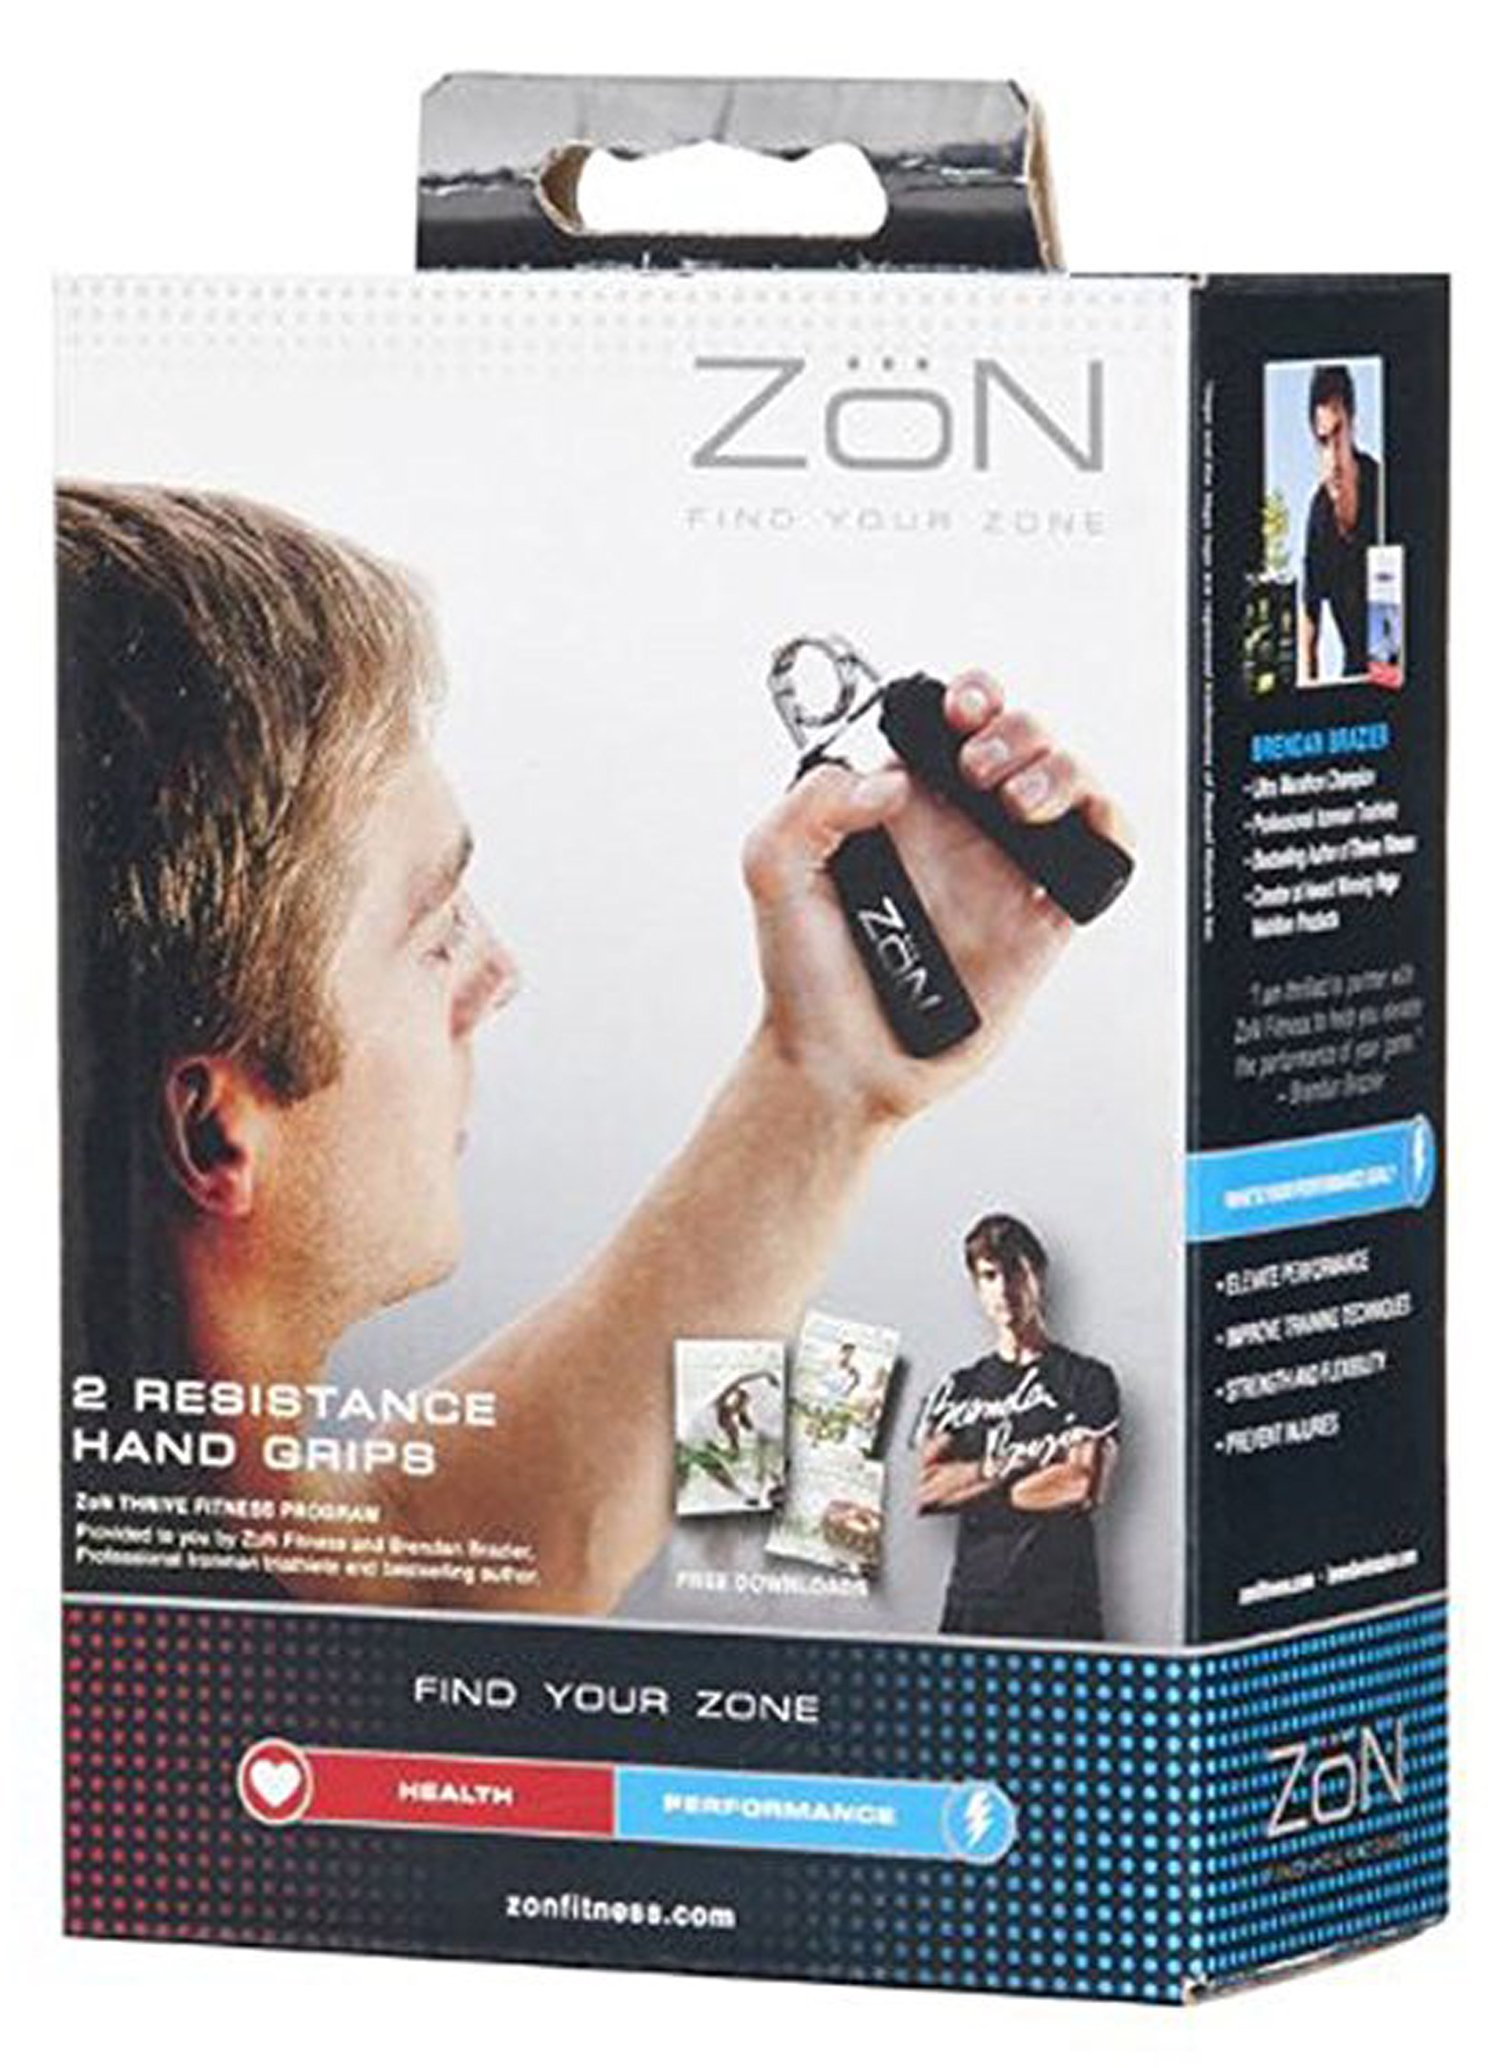 ZoN Resistance Strength Hand Grips - 2 Pack